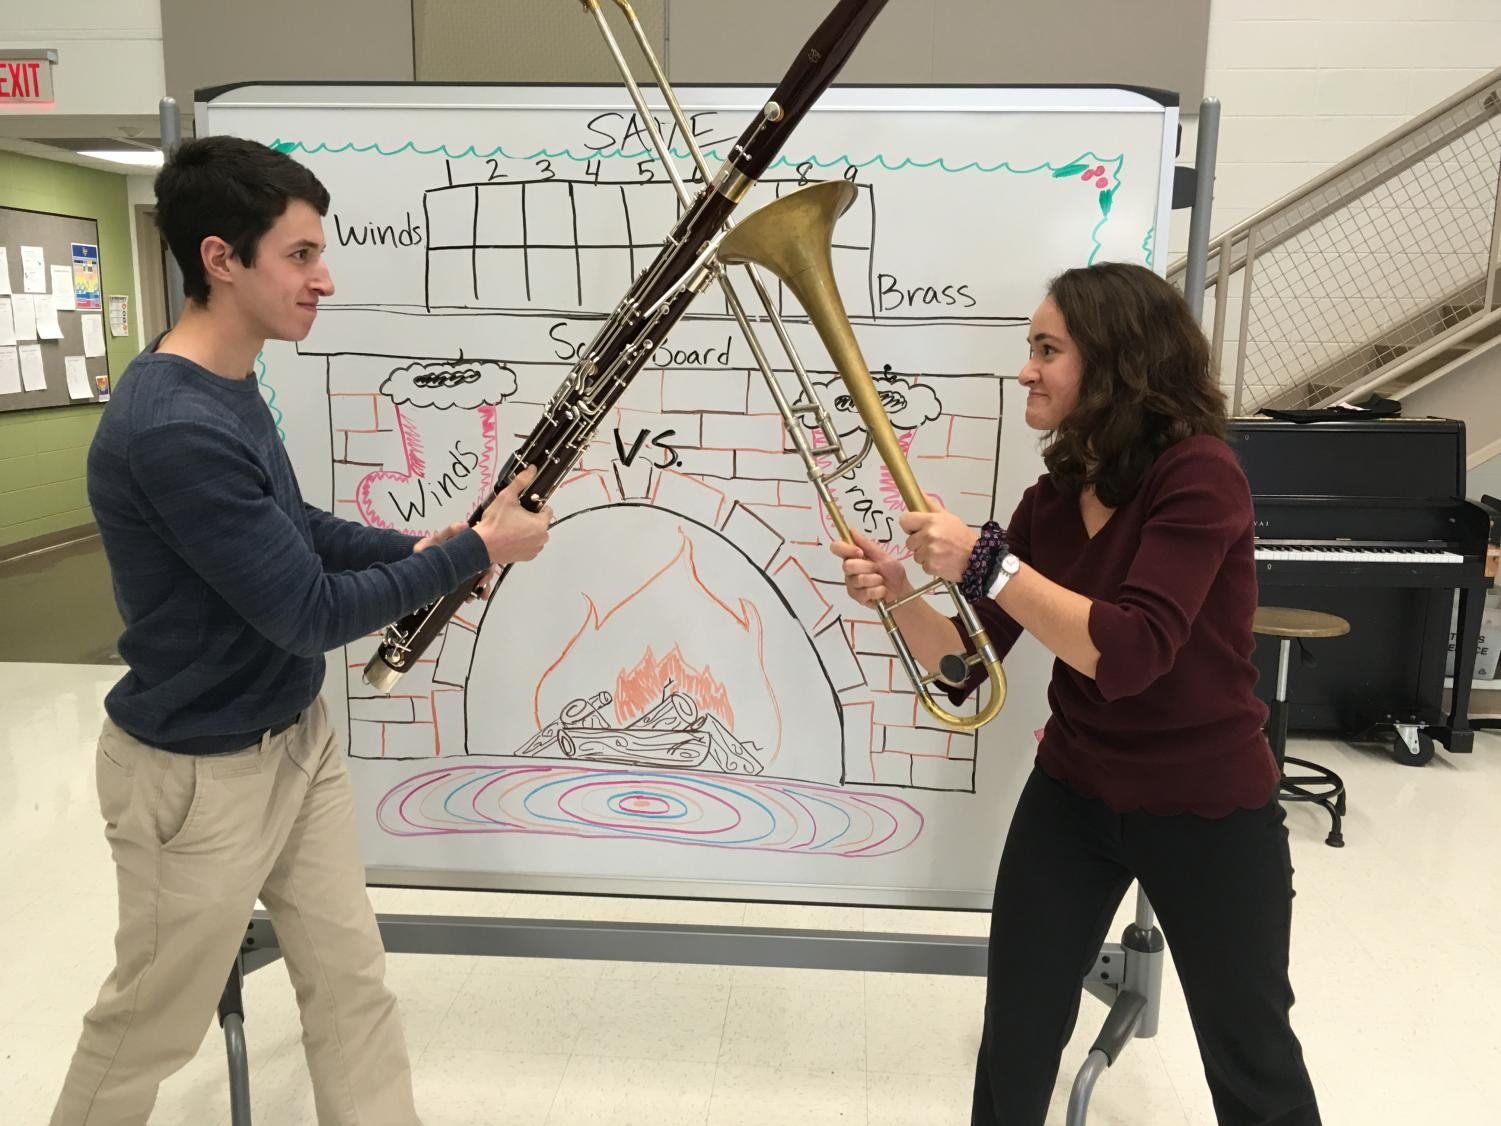 Holiday Winds student leader Emmet Rubin and Holiday Brass leader Katherine Jemian in anticipation of the annual competition.